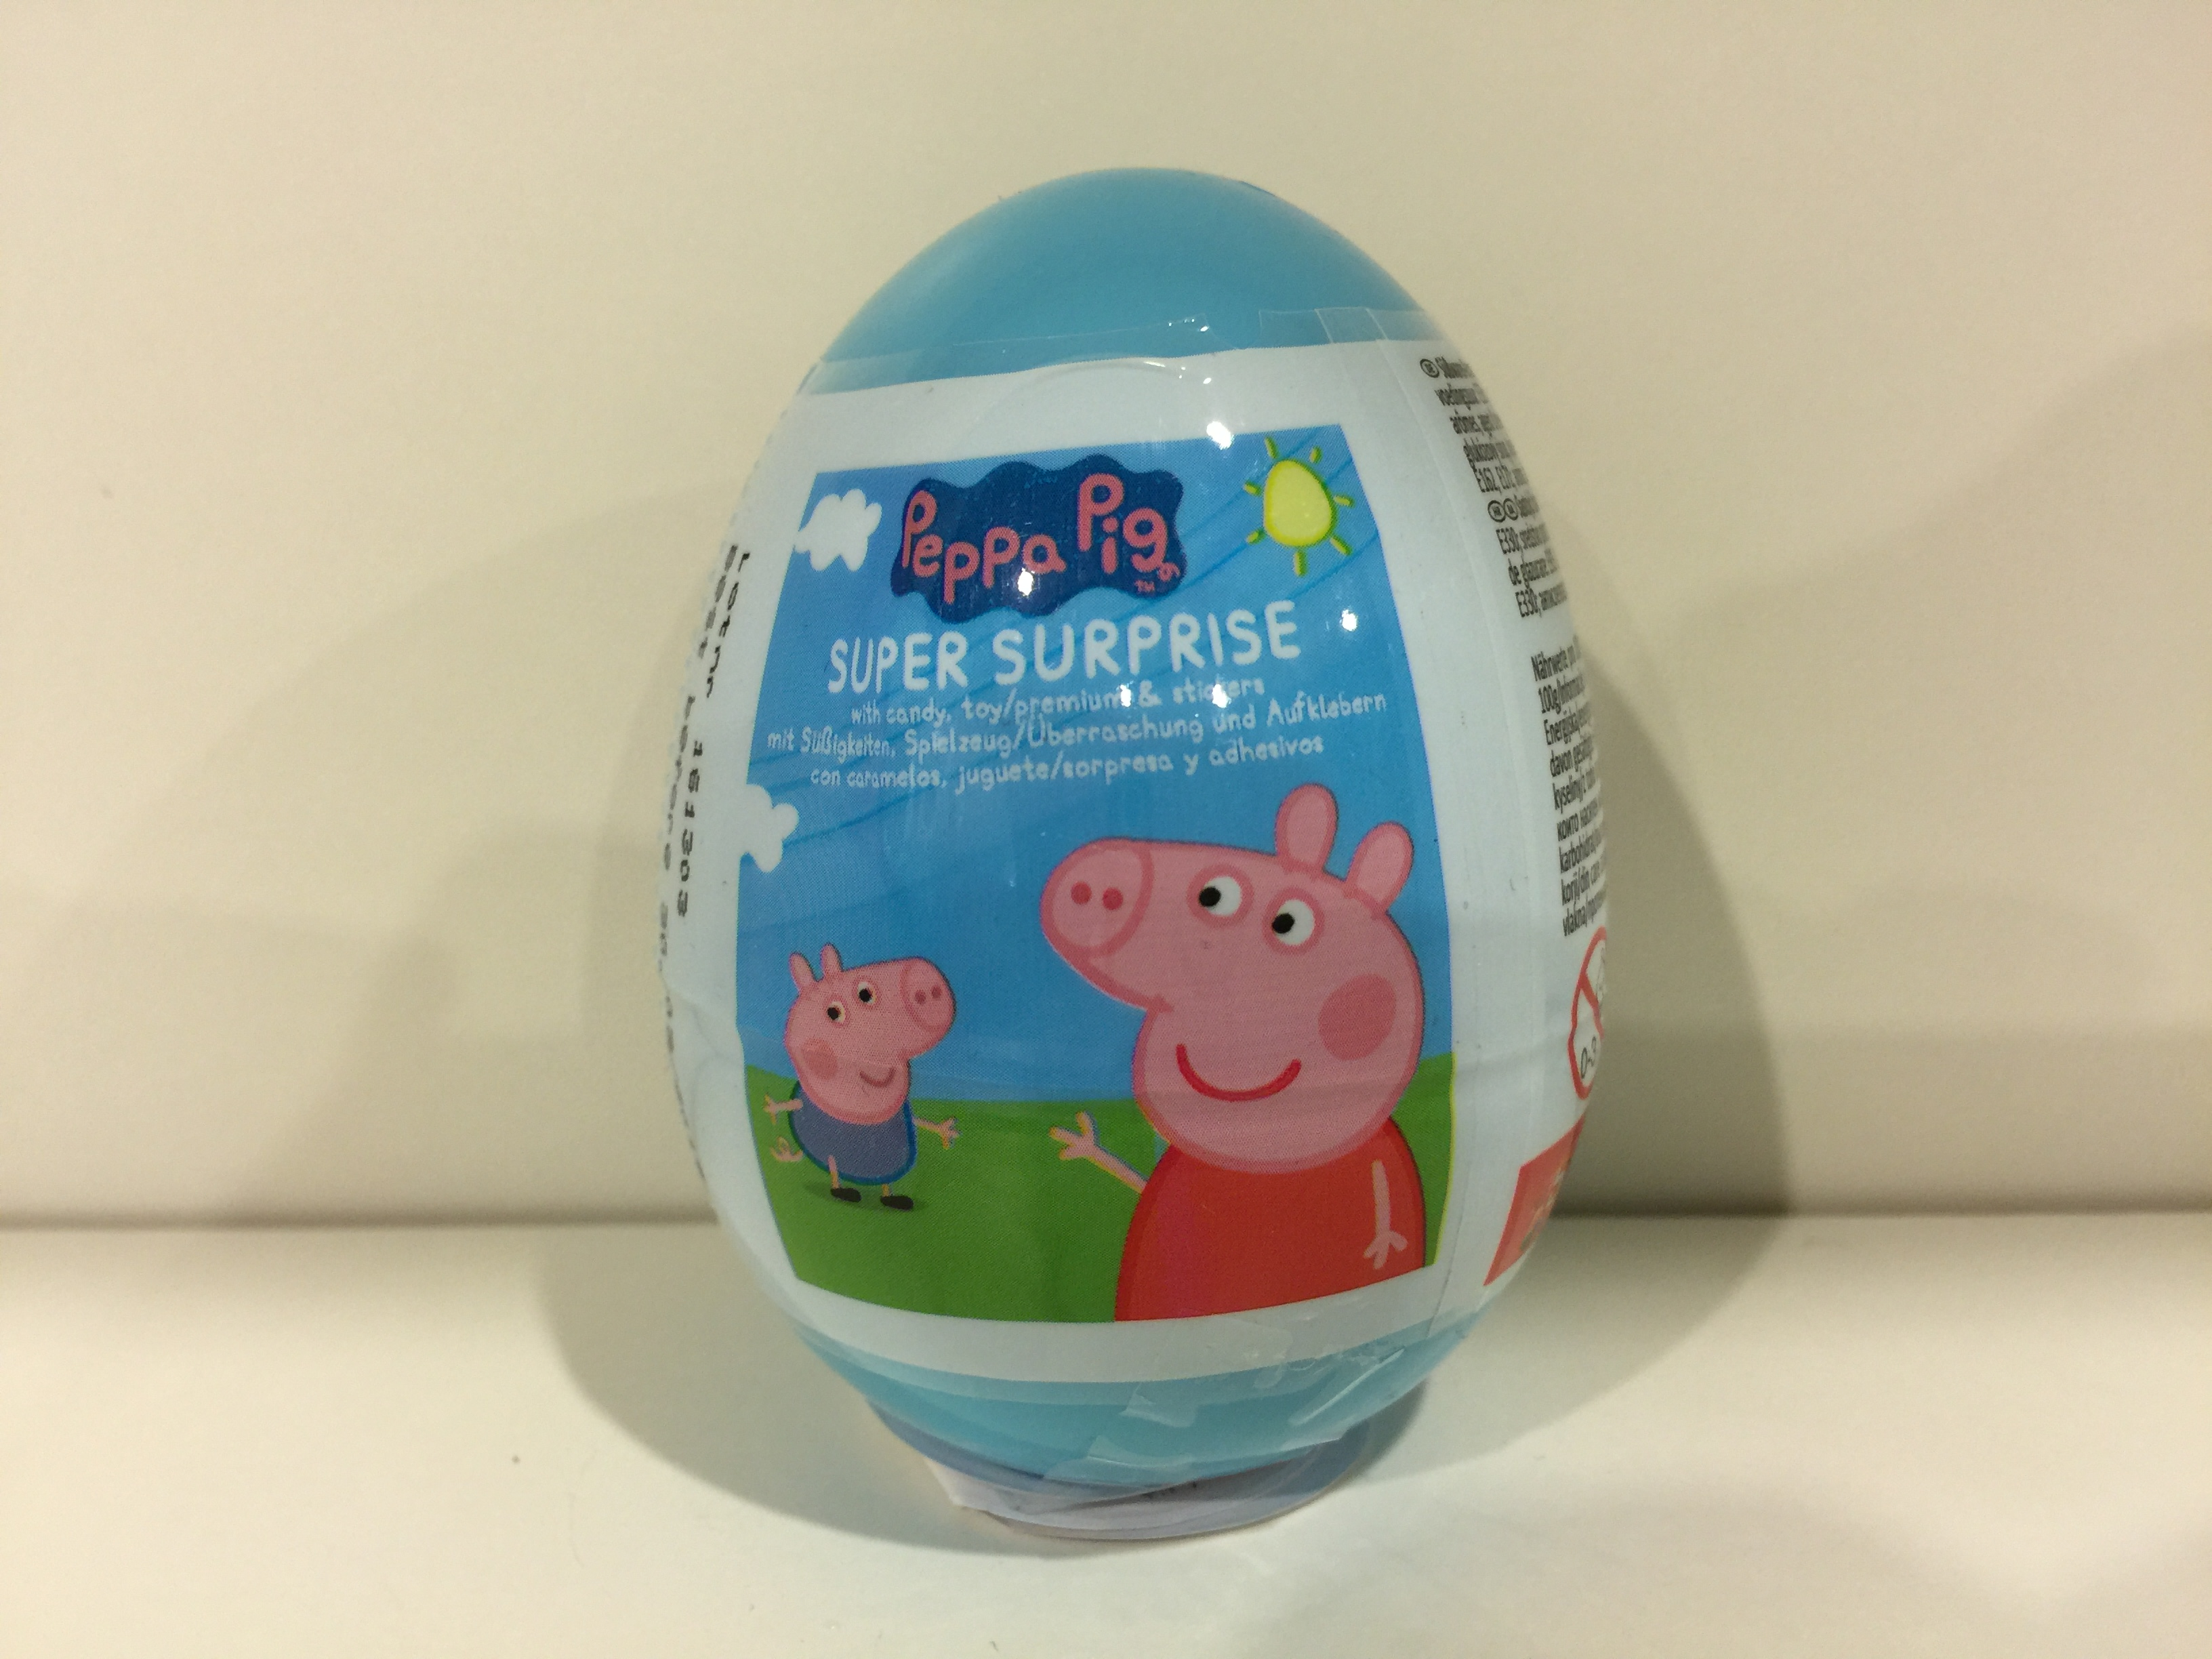 Peppa Pig Plastic Surprise Egg (Candy EXPIRED Only) - Surprise Eggs Malaysia